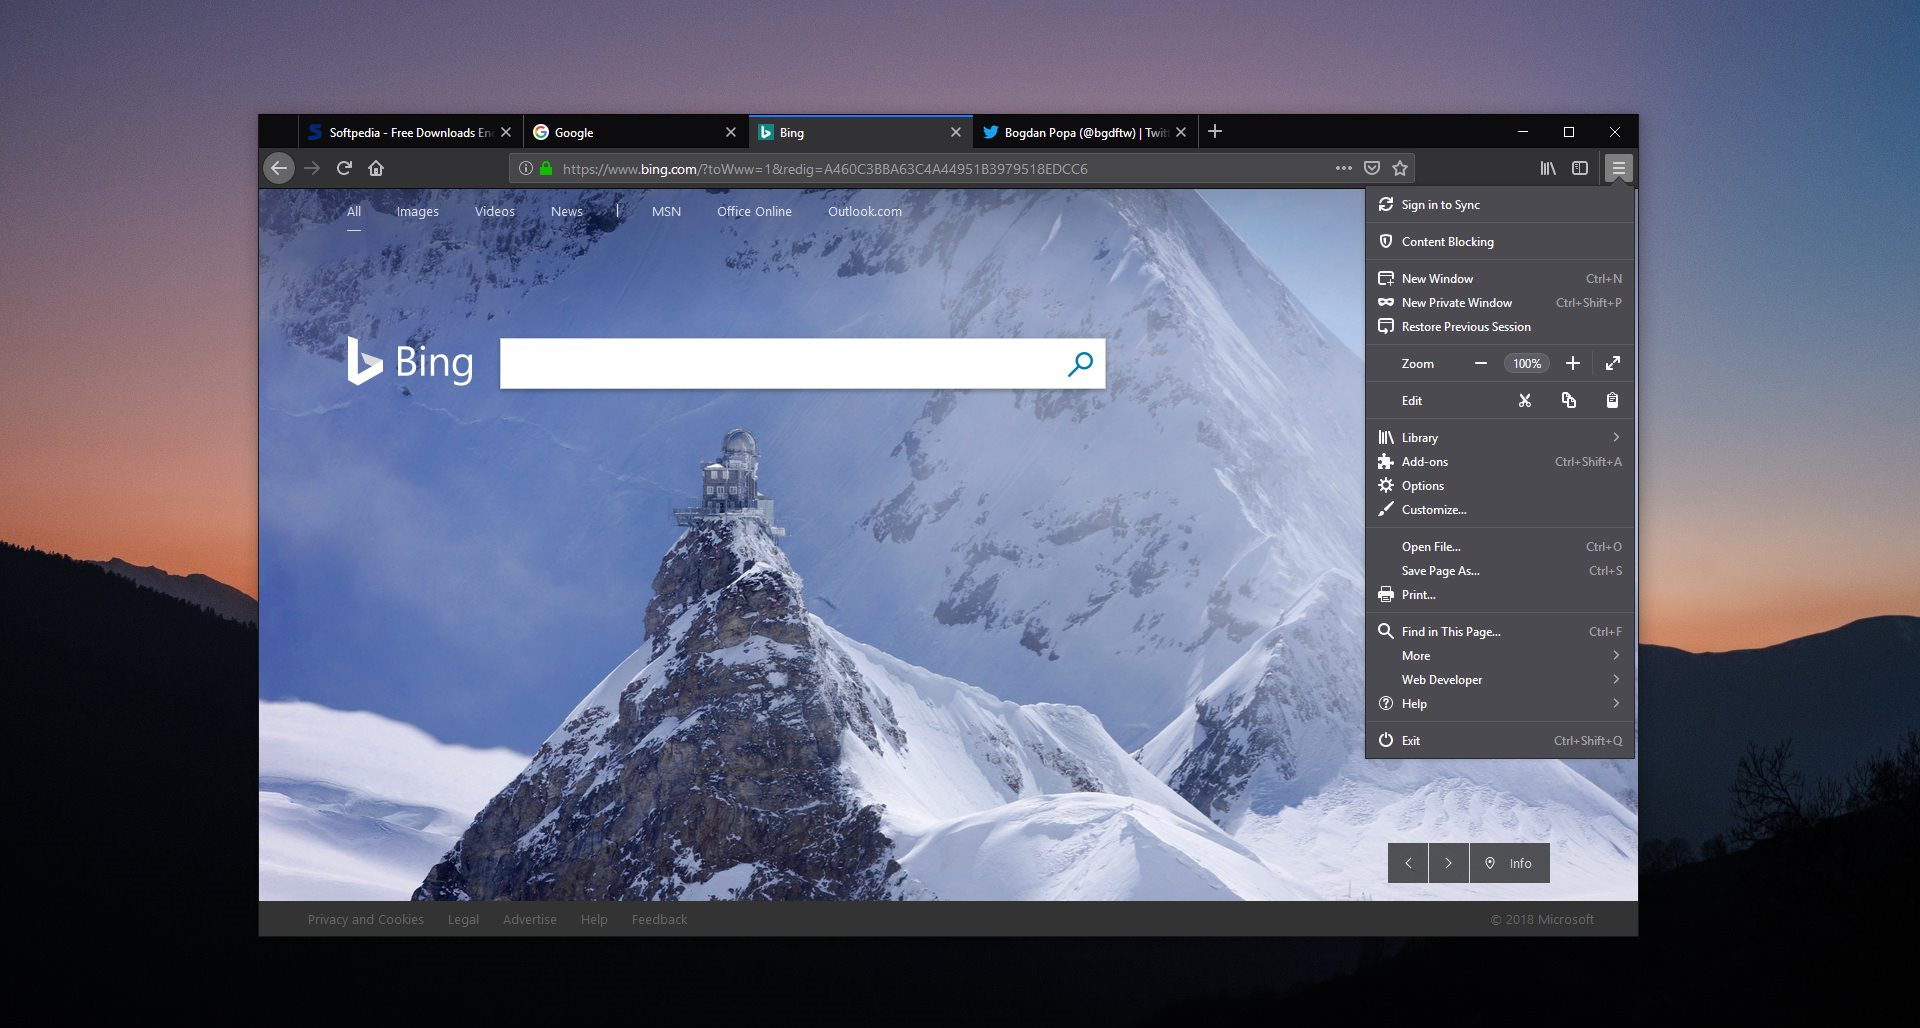 Microsoft's new Chromium-based browser will support Chrome extensions